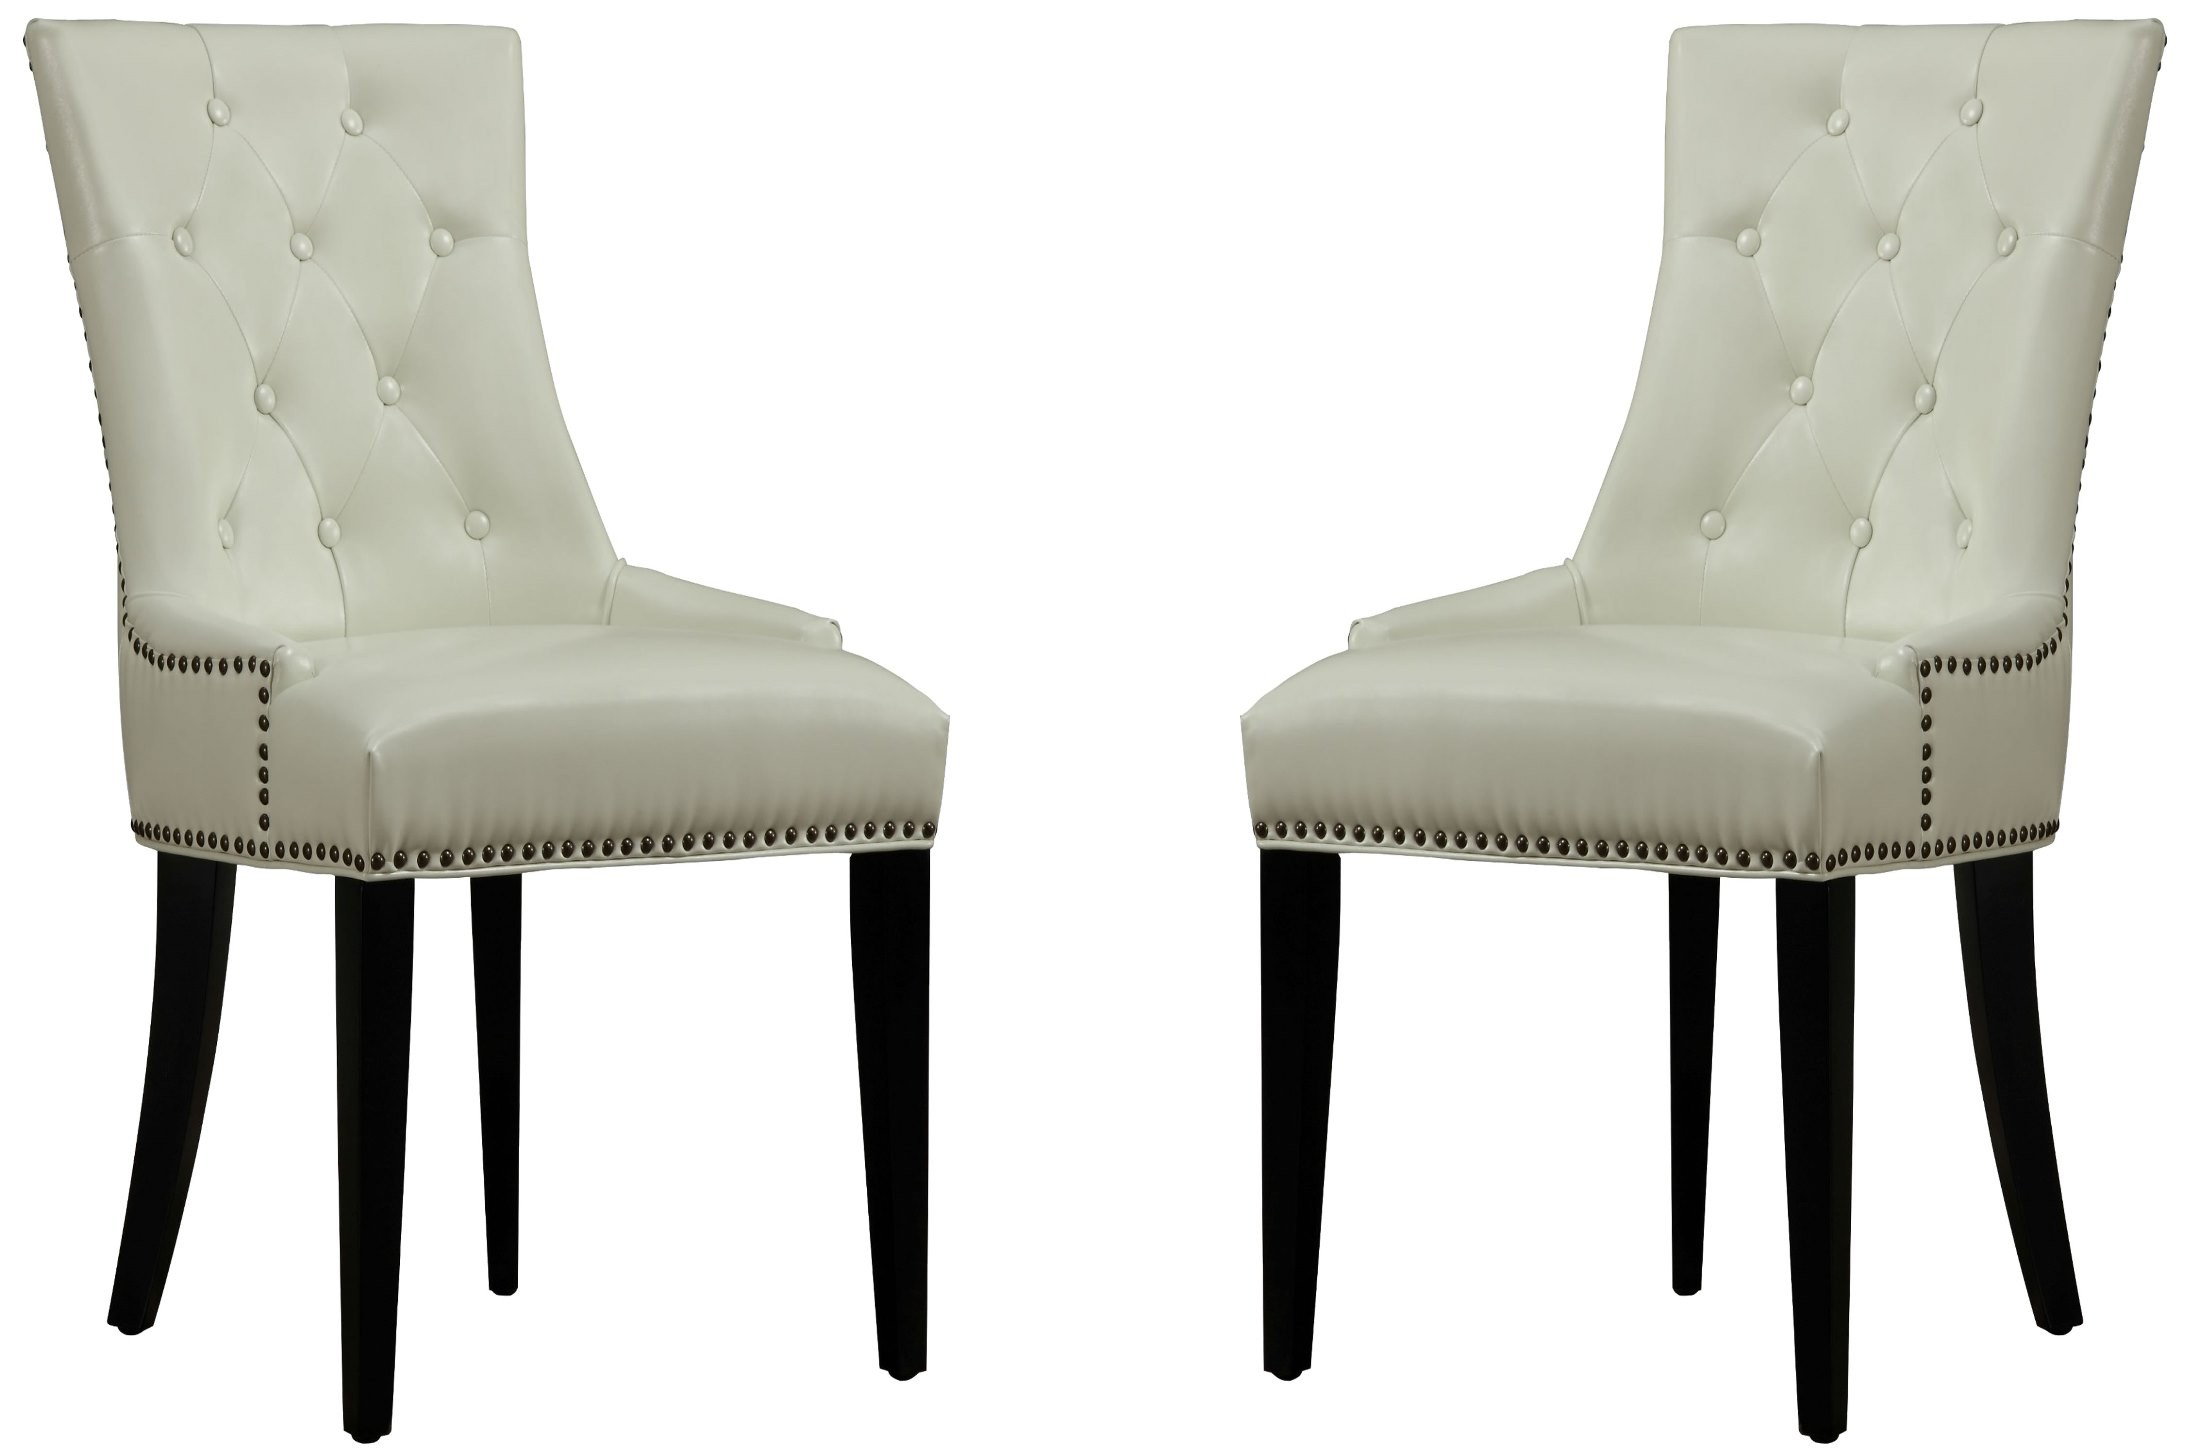 Uptown Cream Leather Dining Chair. 2306186. 2306187. 2306188. 2306189.  2306190